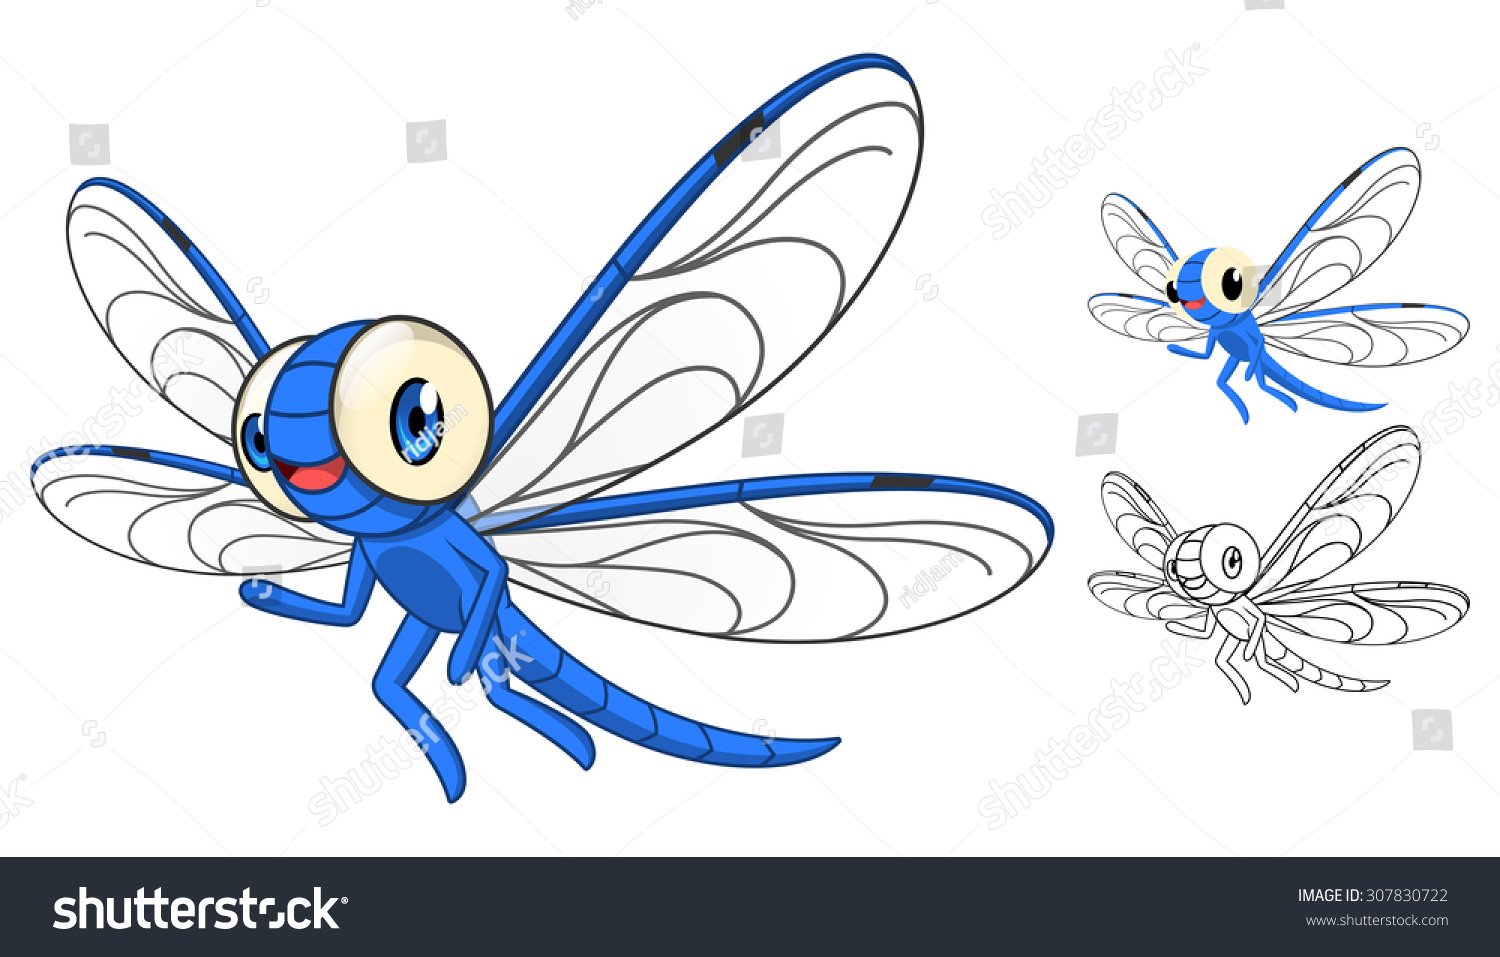 Art Line Quality : High quality detailed dragonfly cartoon character stock